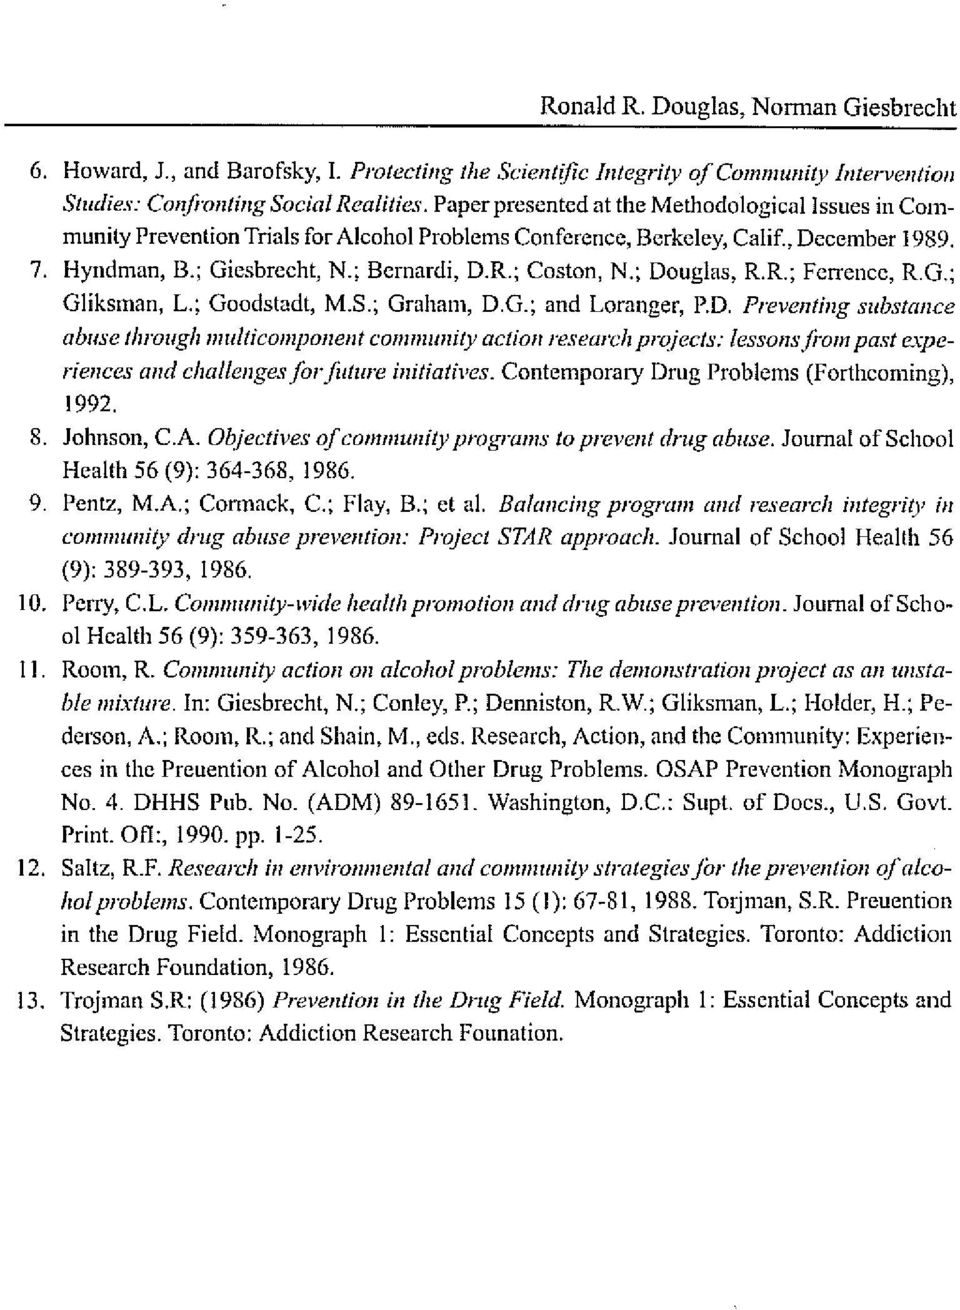 ; Douglas, R.R.; Ferrencc, R.G.; Gliksman, L.; Goodstadt, M.S.; Graham, D.G.; and Loranger, p.o. Preventing subslance abuse Ihrough 111ulticomponent commullity aetion research projects: lessollsfrom past e.